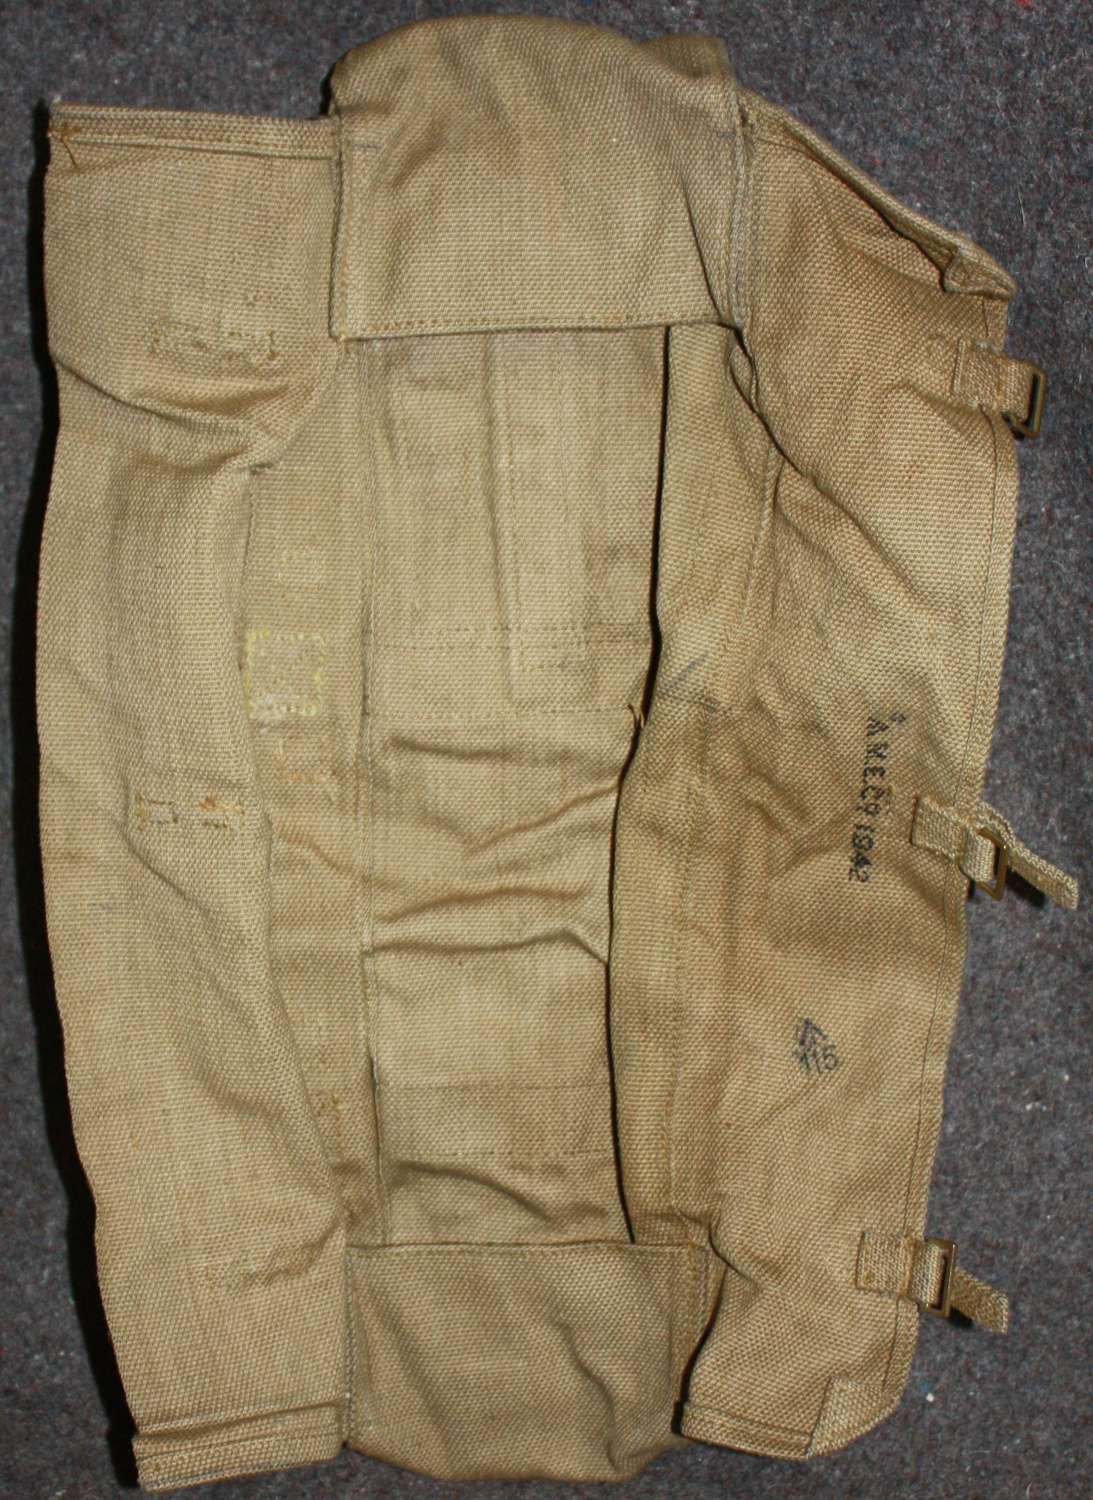 A 1942 DATED 2 INCH MORTAR LEG AMMO BAG